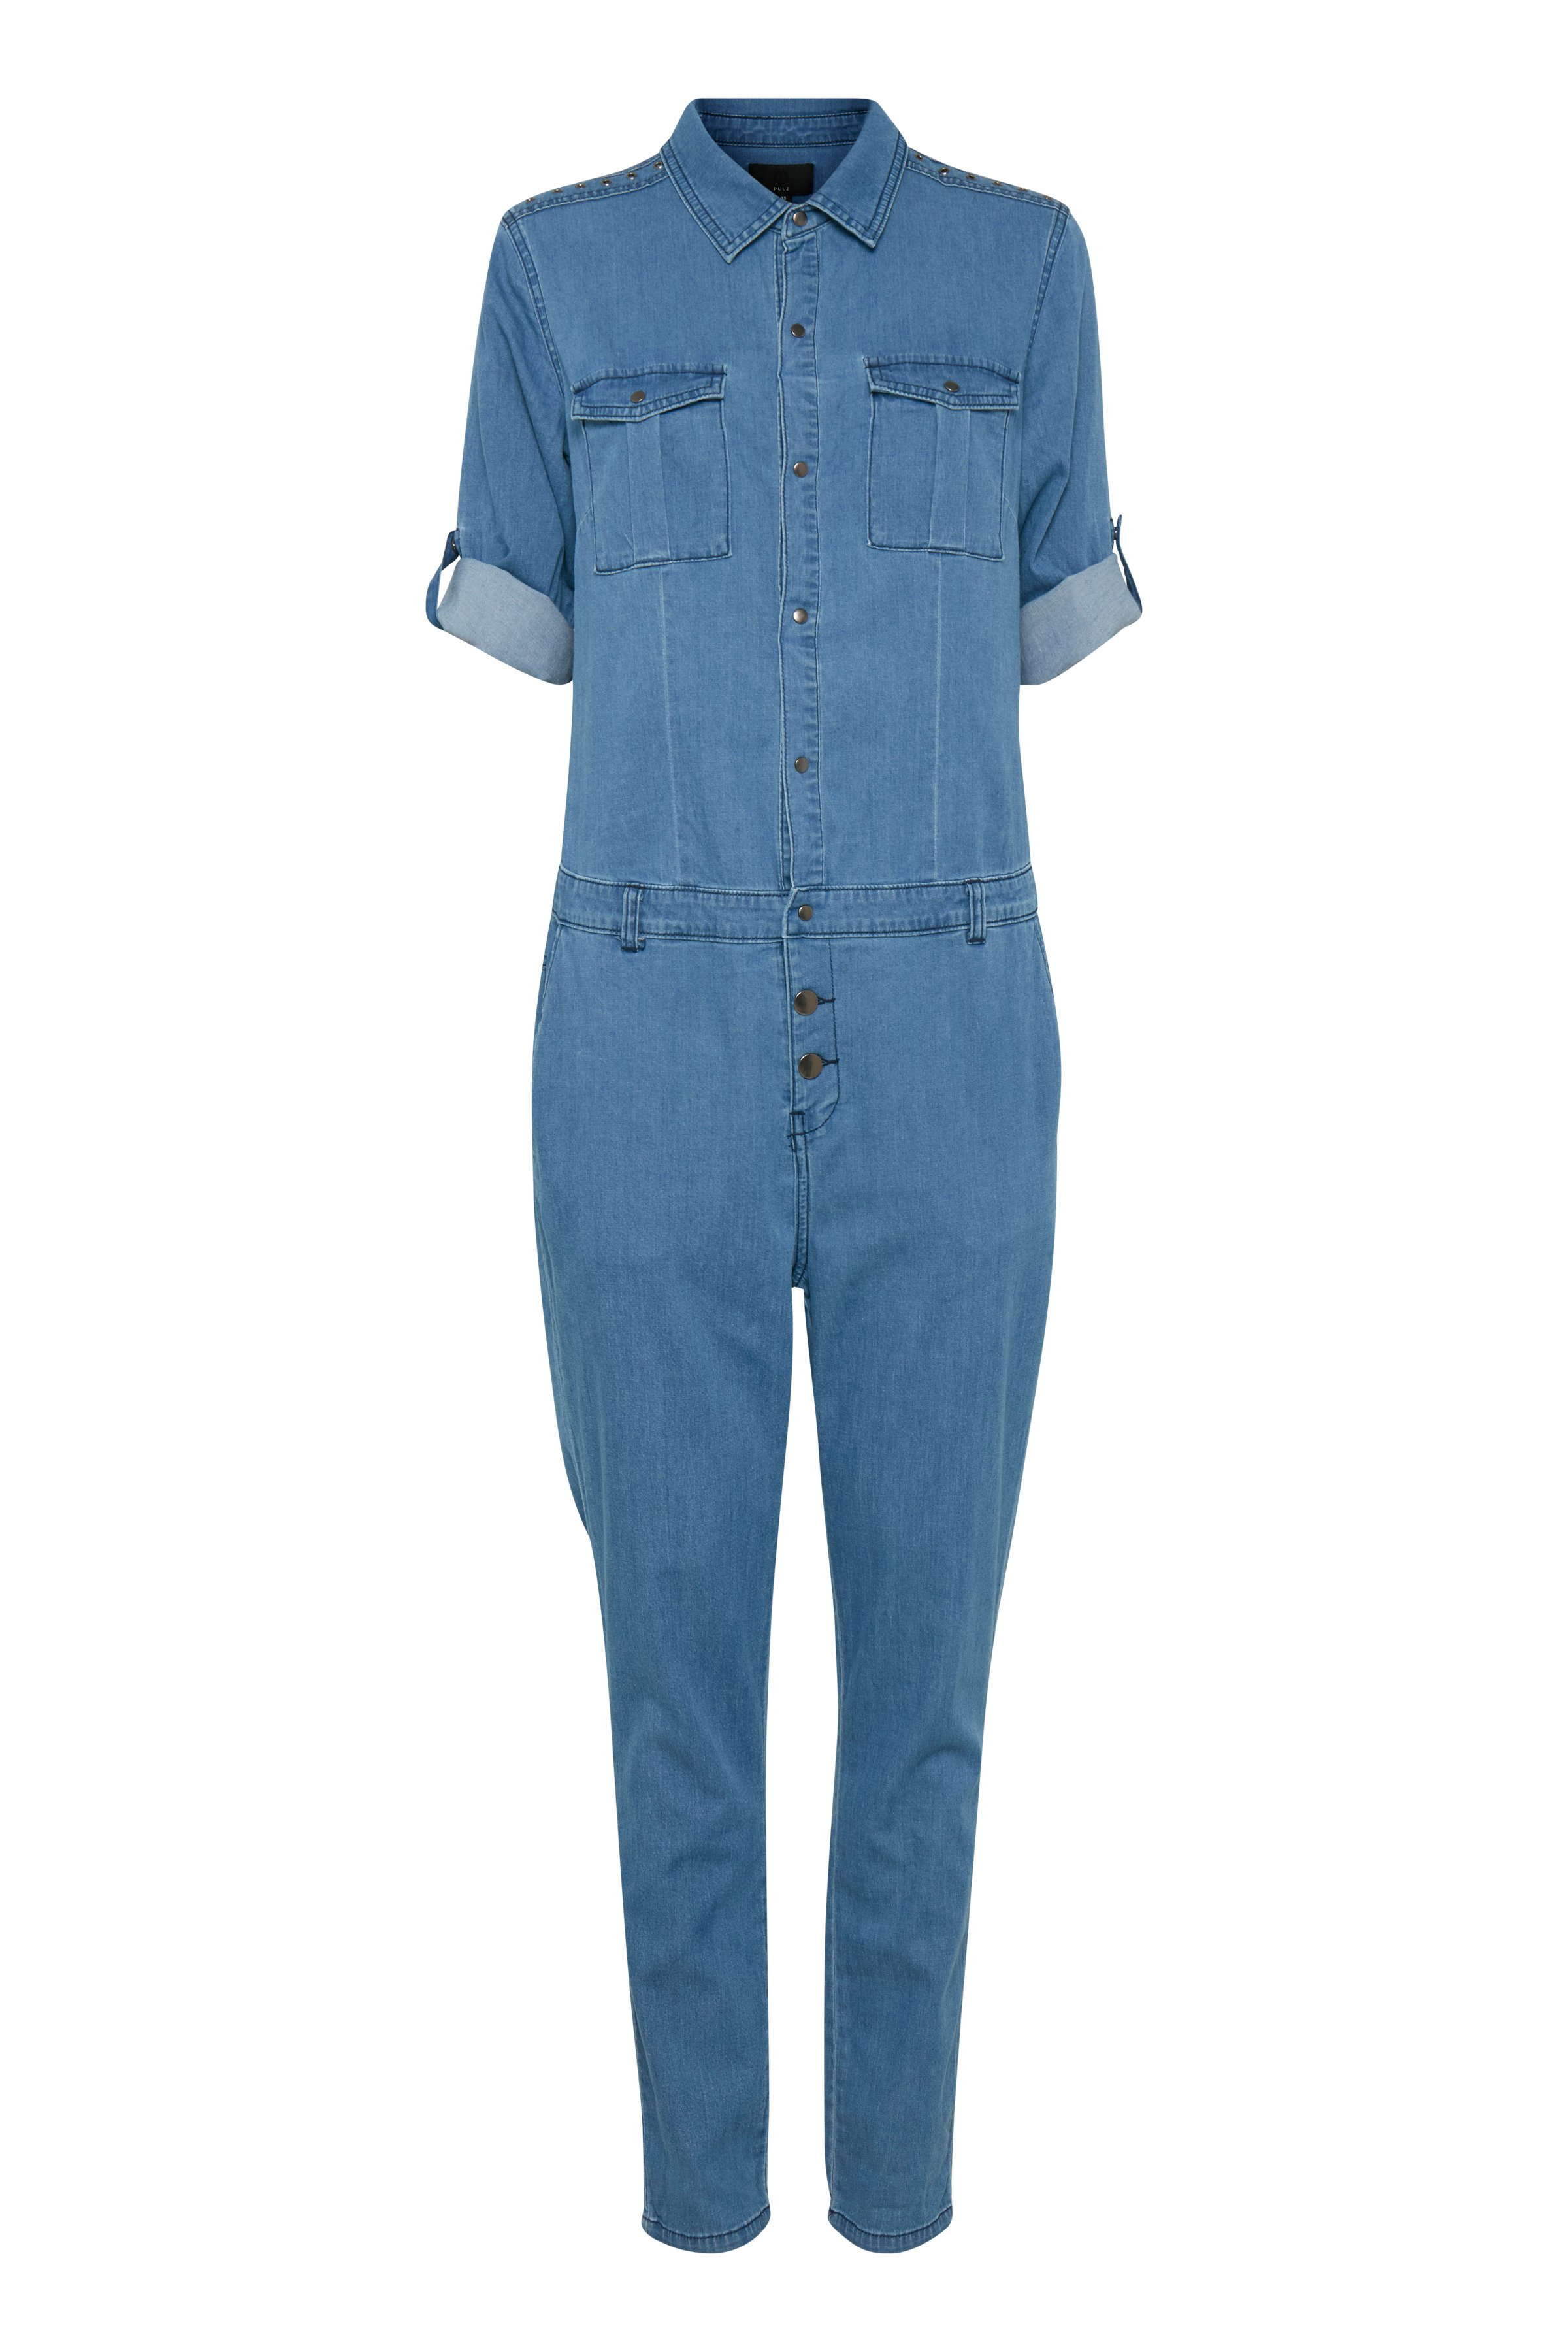 Medium blue denim Jumpsuit – Køb Medium blue denim Jumpsuit fra str. 32-44 her